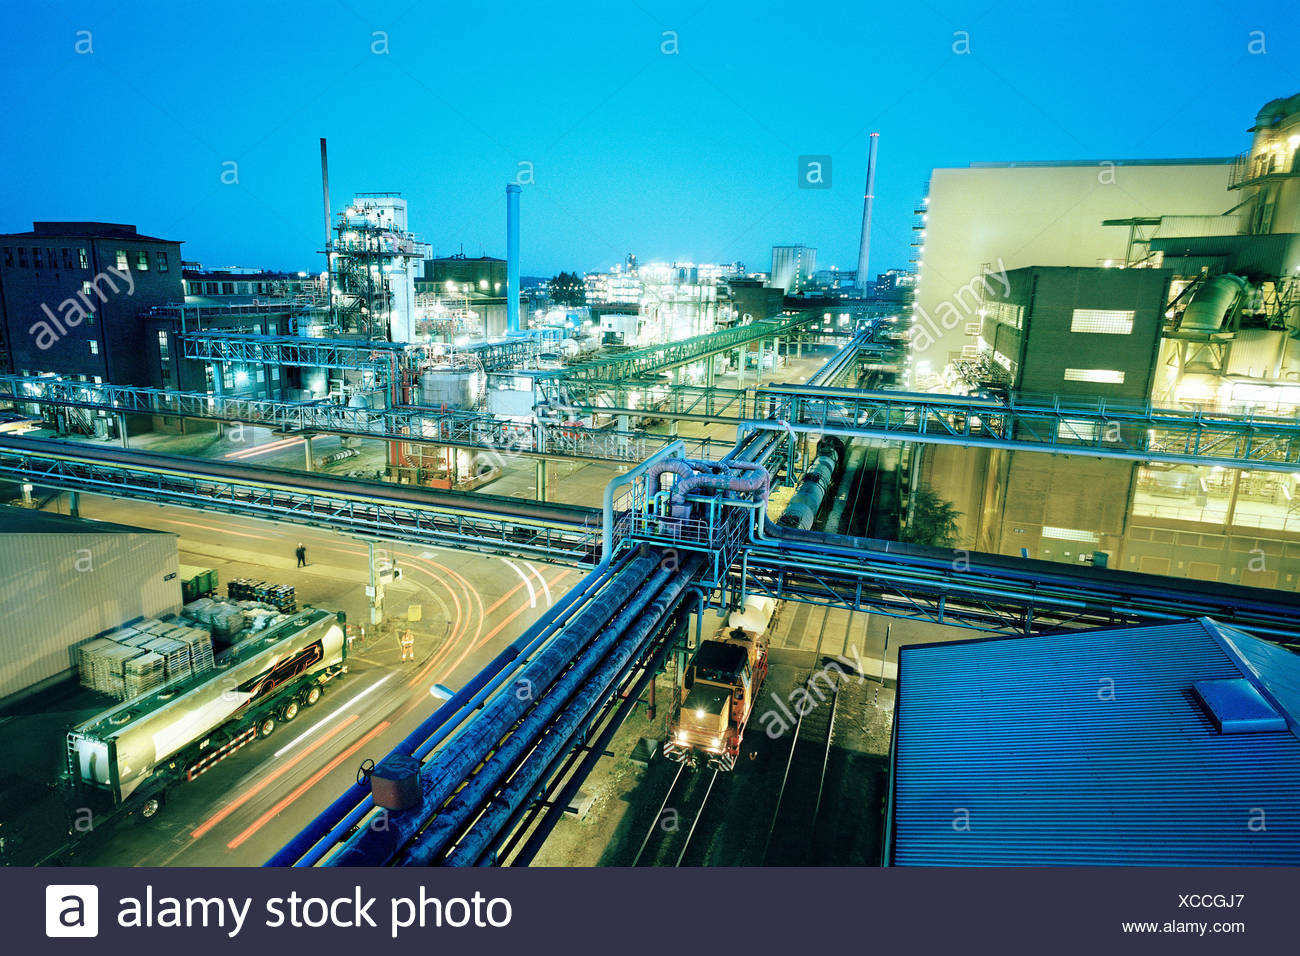 Large Chemical Plant at night - Stock Image